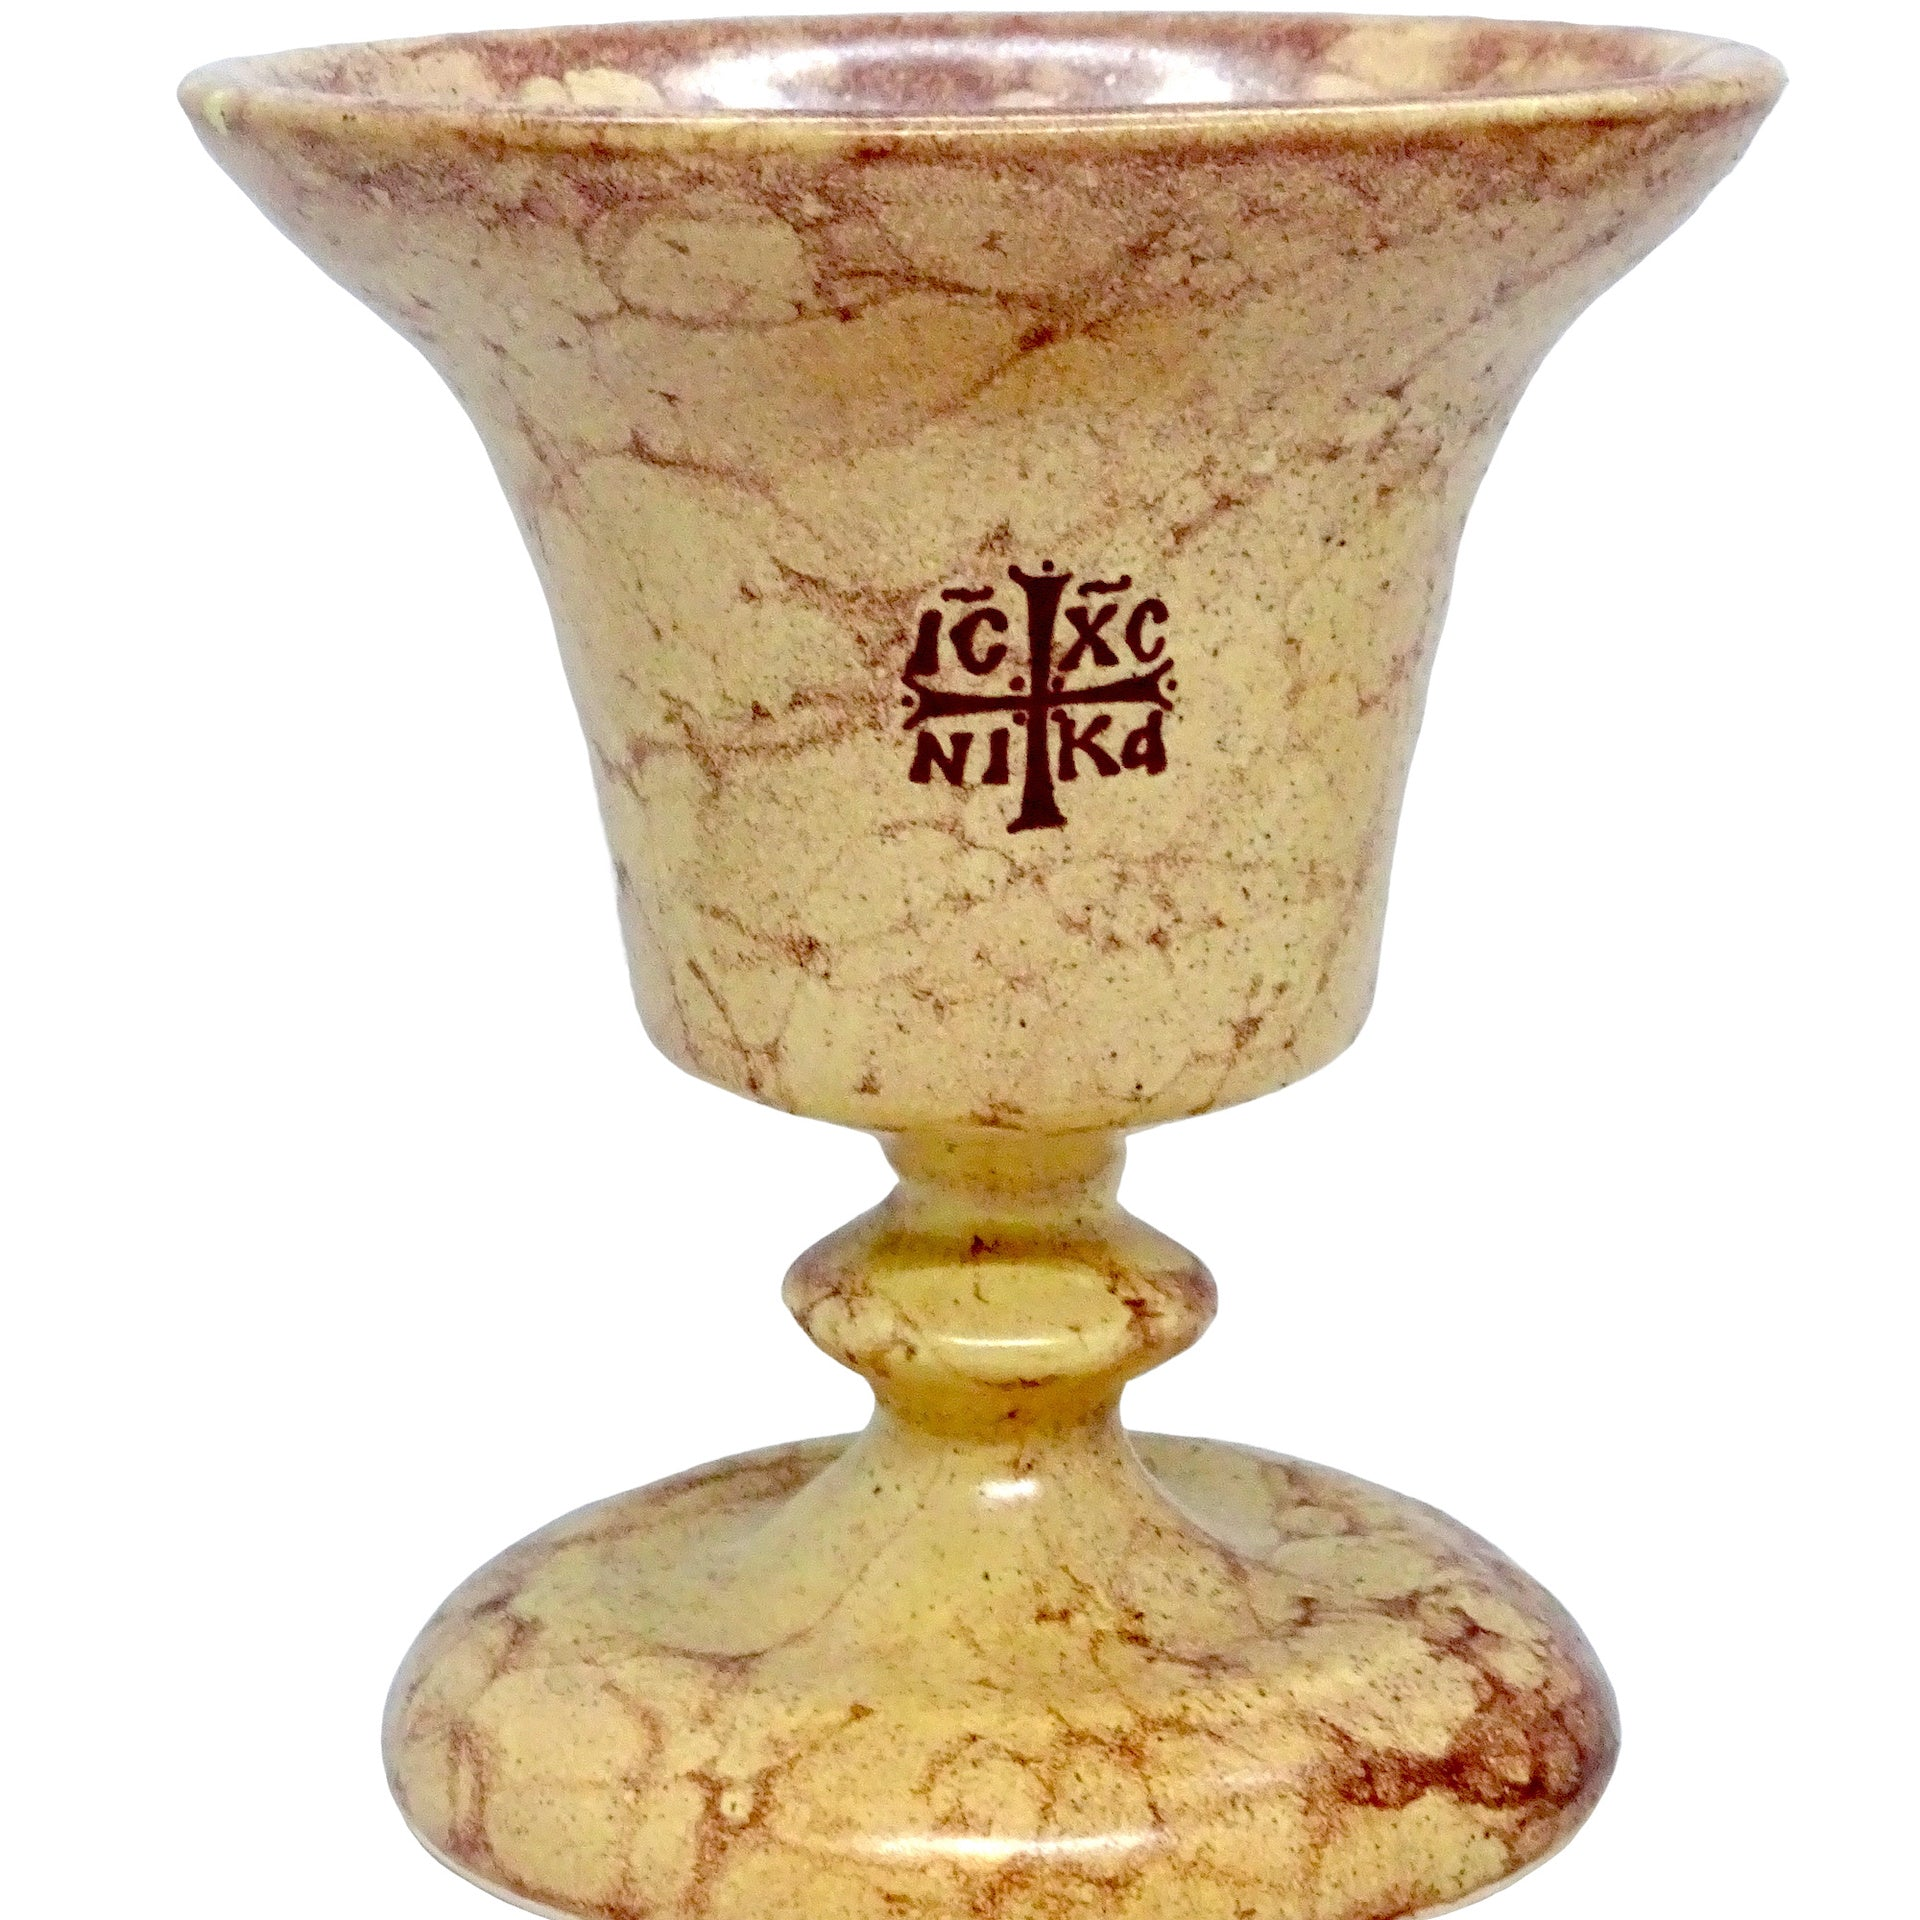 Tabletop Orthodox Ceramic Vigil Lamp in Ivory-Beige Color with the image of the Byzantine Cross